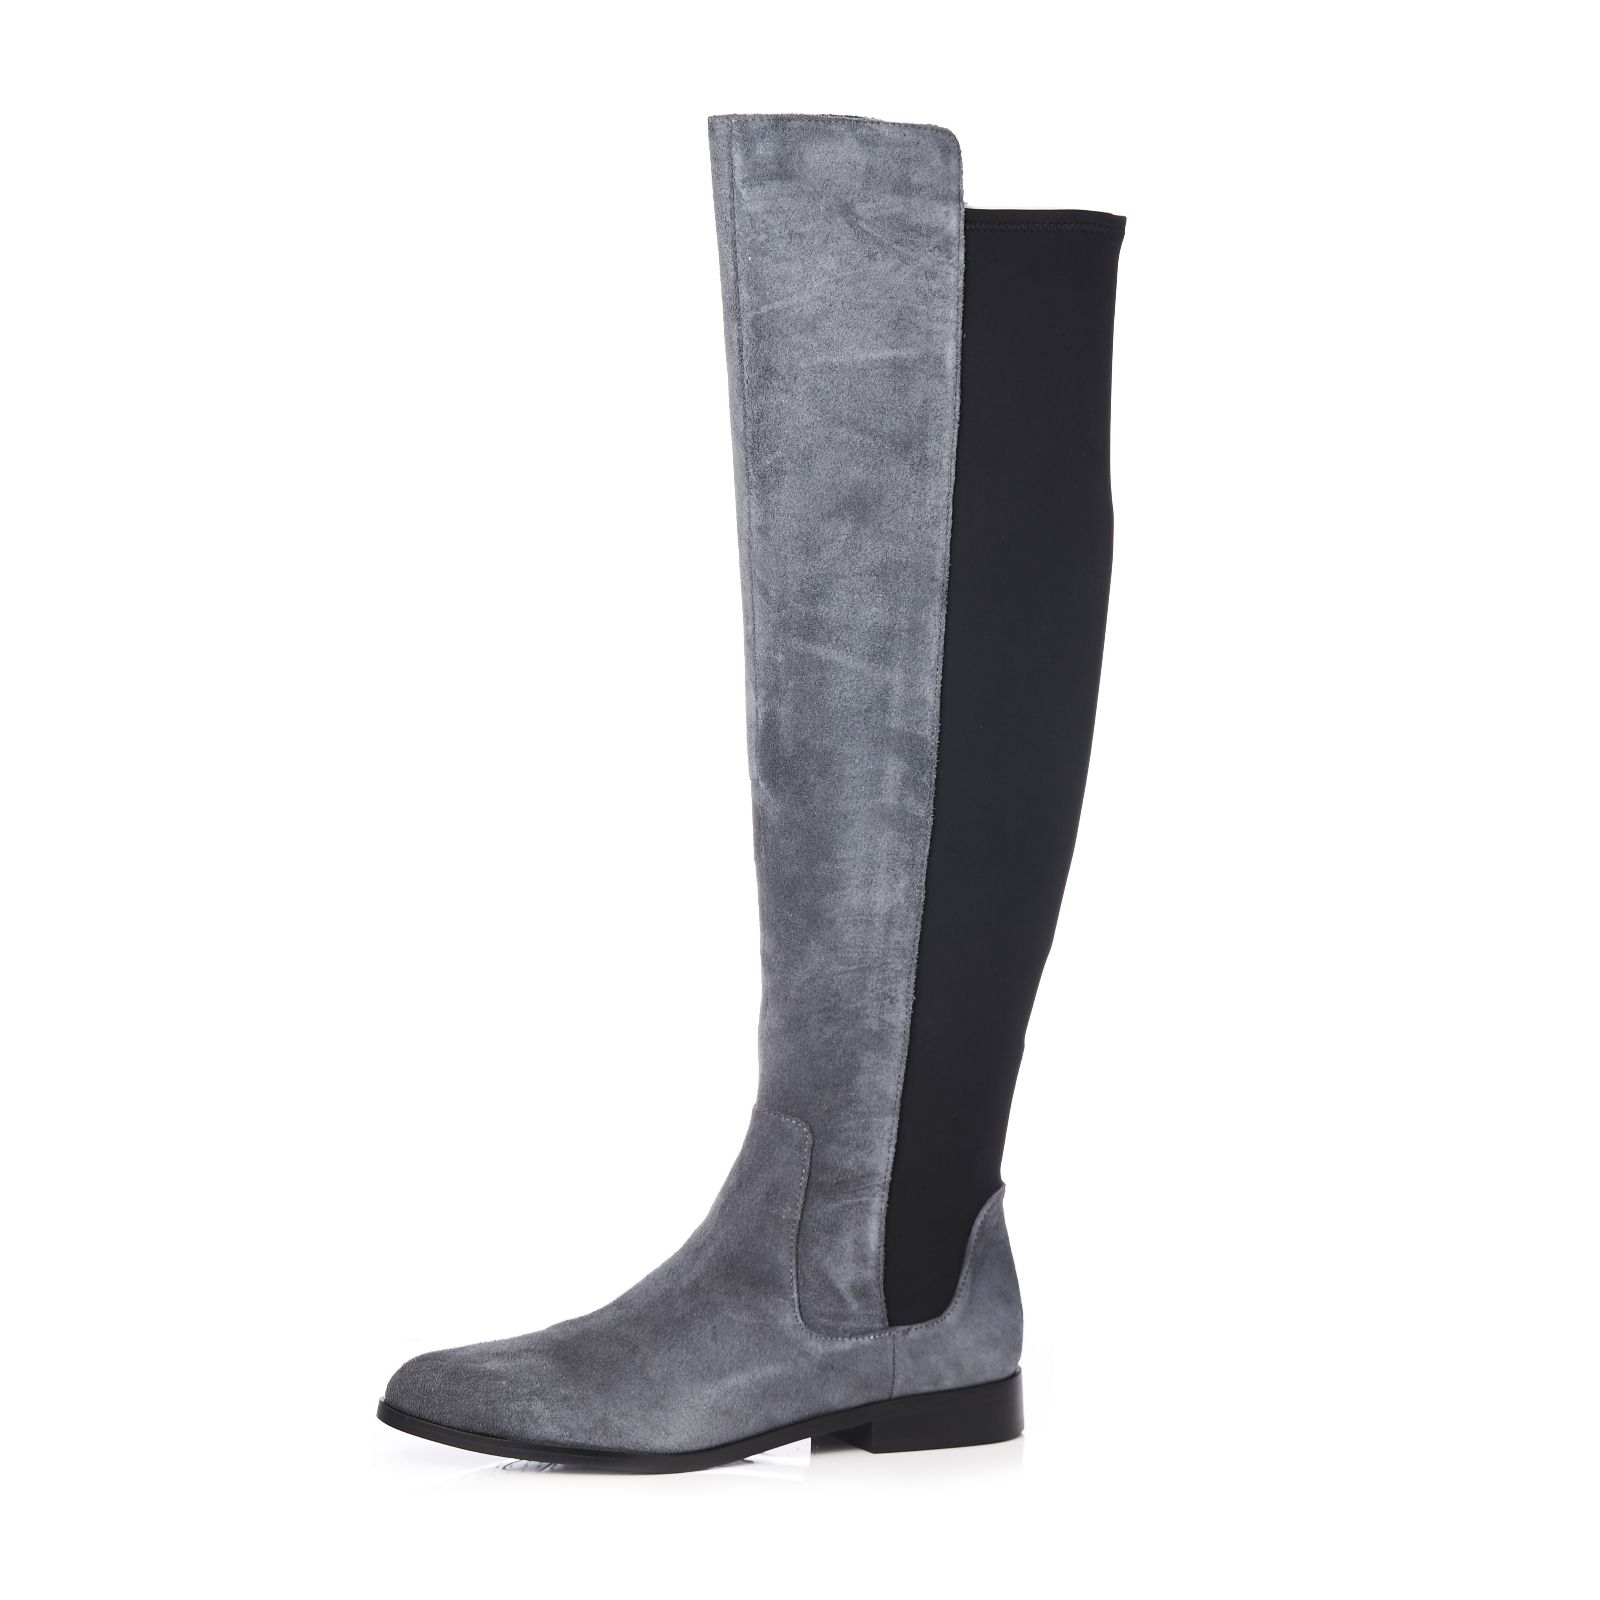 38b72b90cd6 Clarks Daina Rae Over The Knee Leather Boot Standard Fit - QVC UK